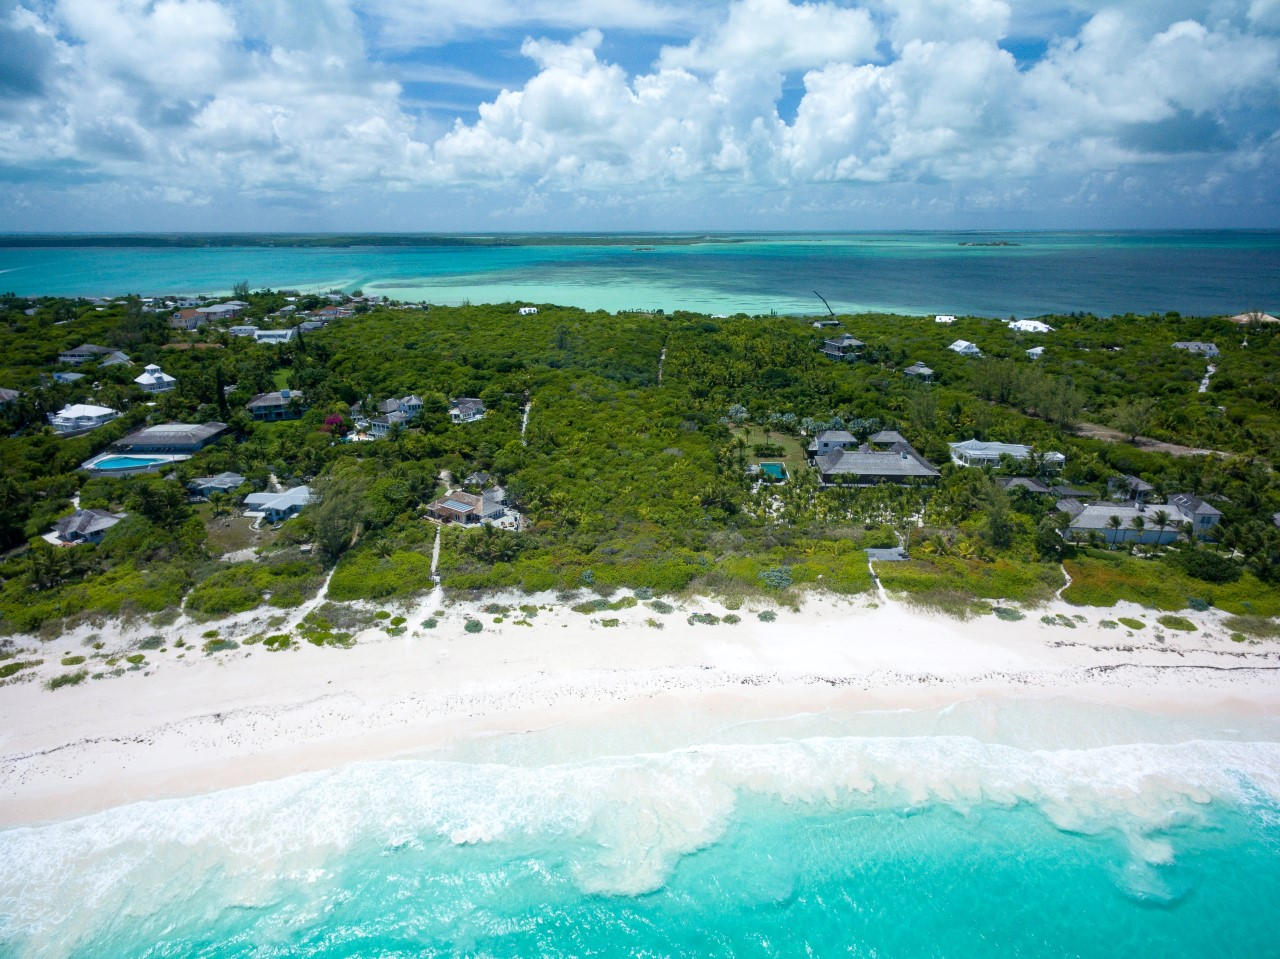 Bahamas Real Estate - Bahamas luxury homes, islands and rentals